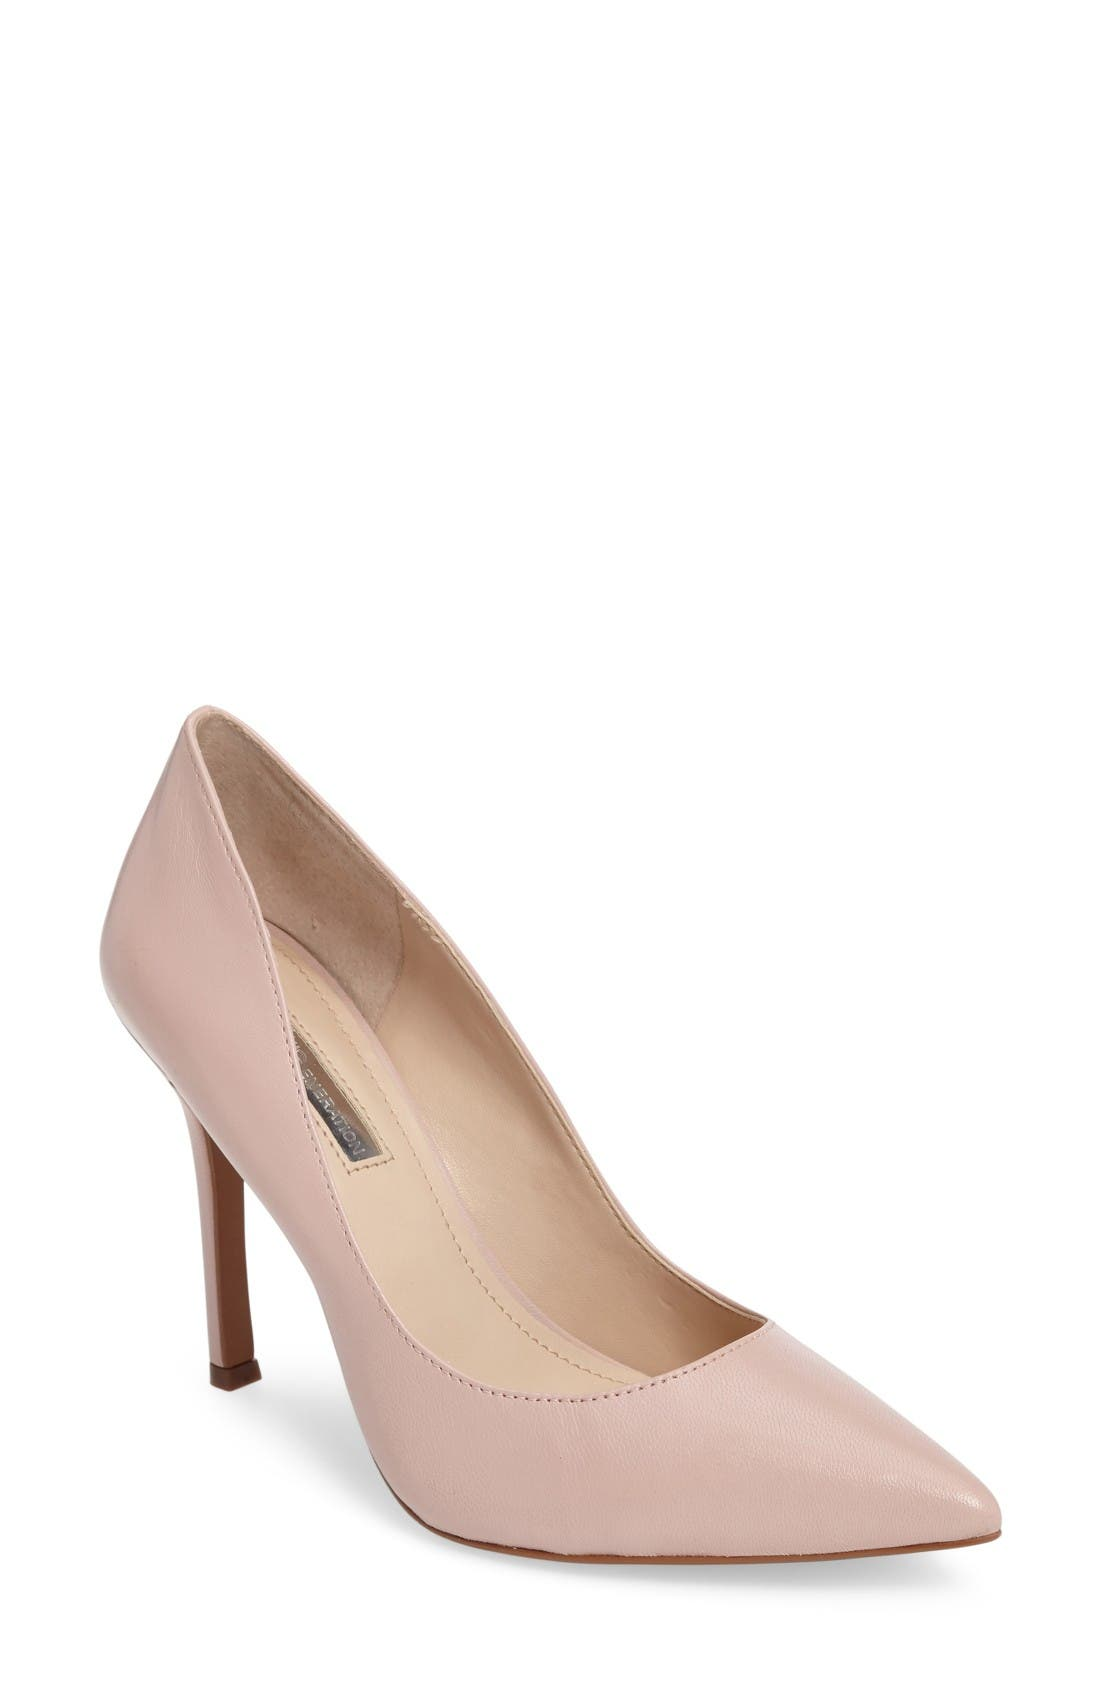 'Treasure' Pointy Toe Pump,                             Main thumbnail 1, color,                             Bare Pink Leather